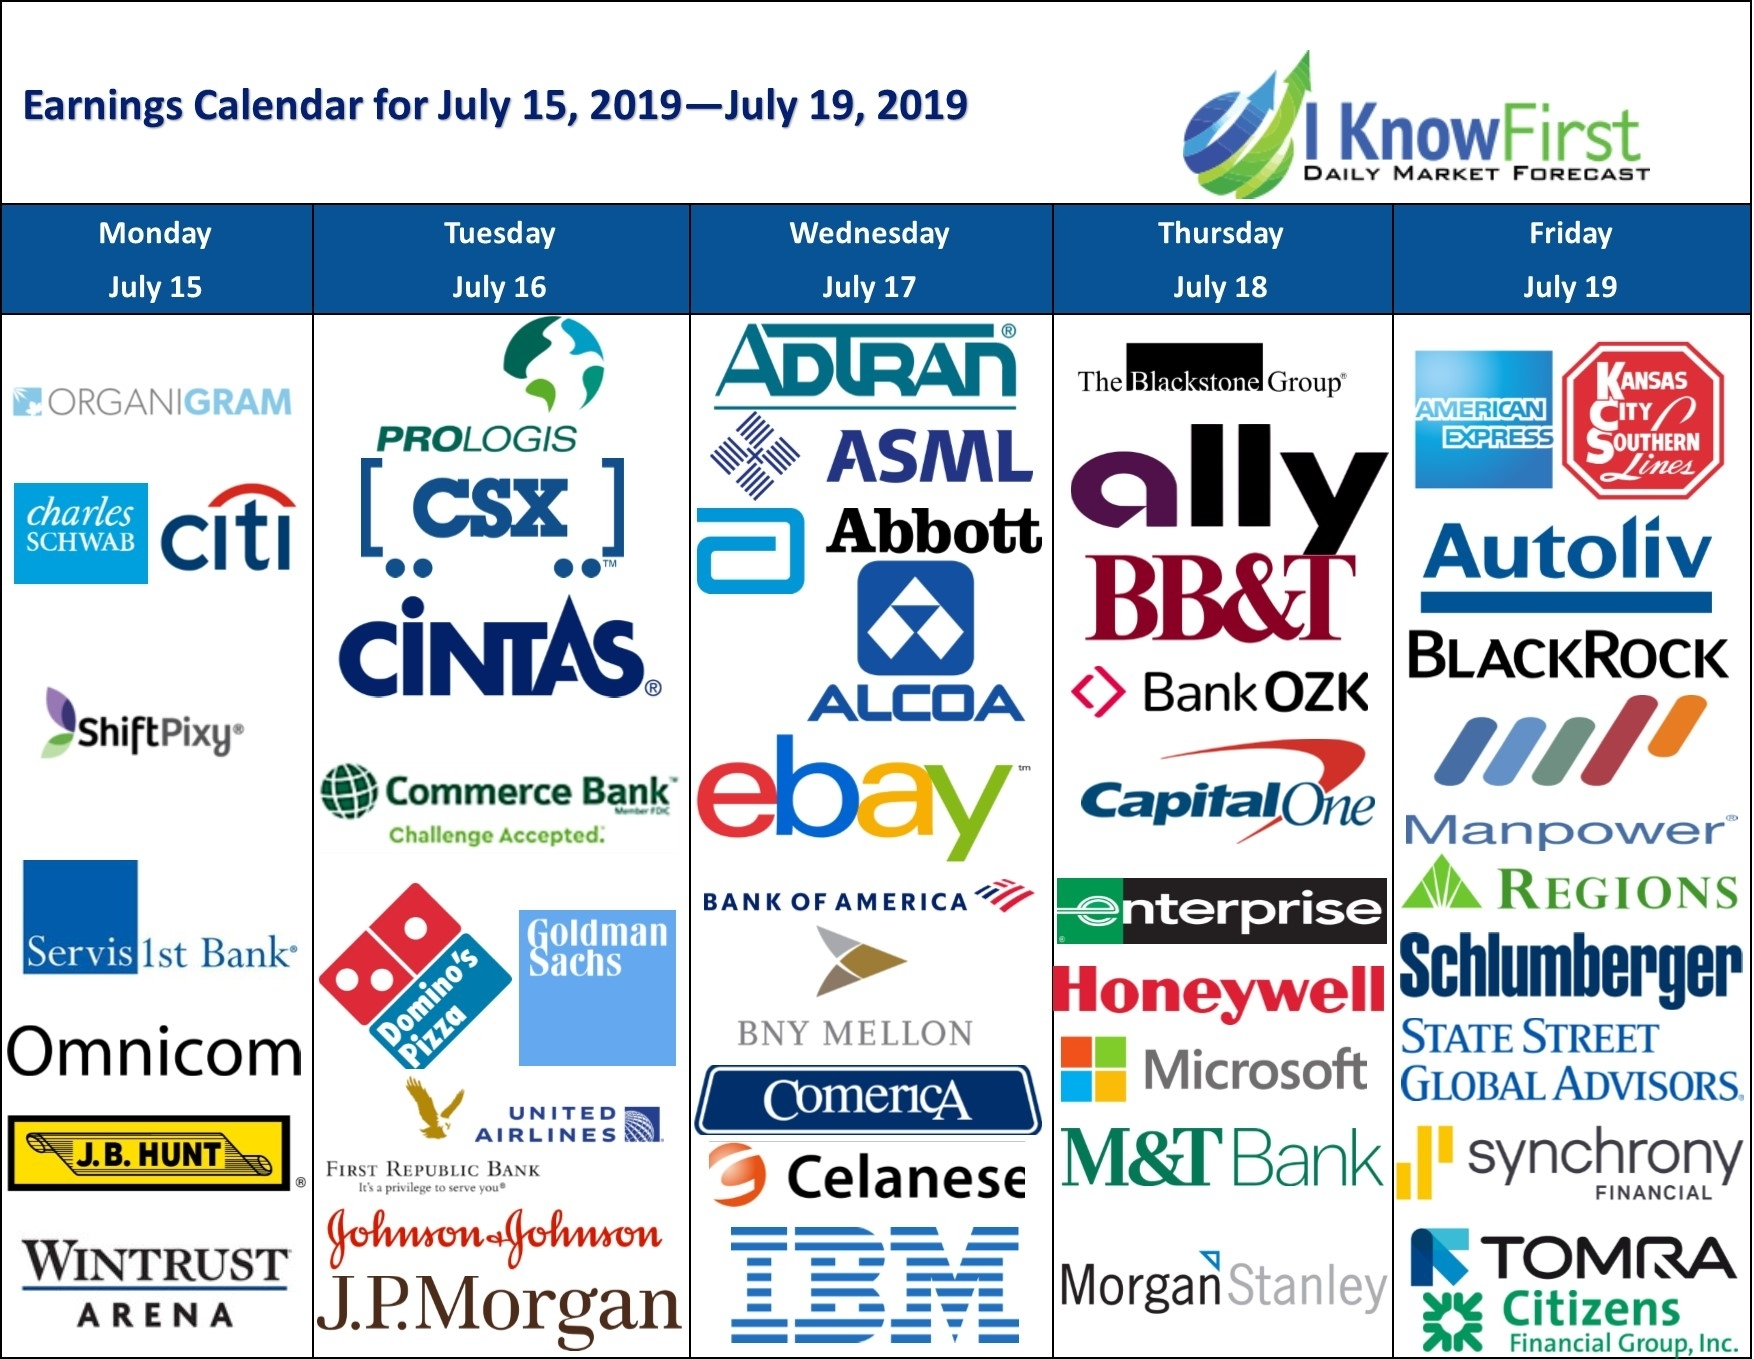 Week #29, 2019: Earnings Calendar